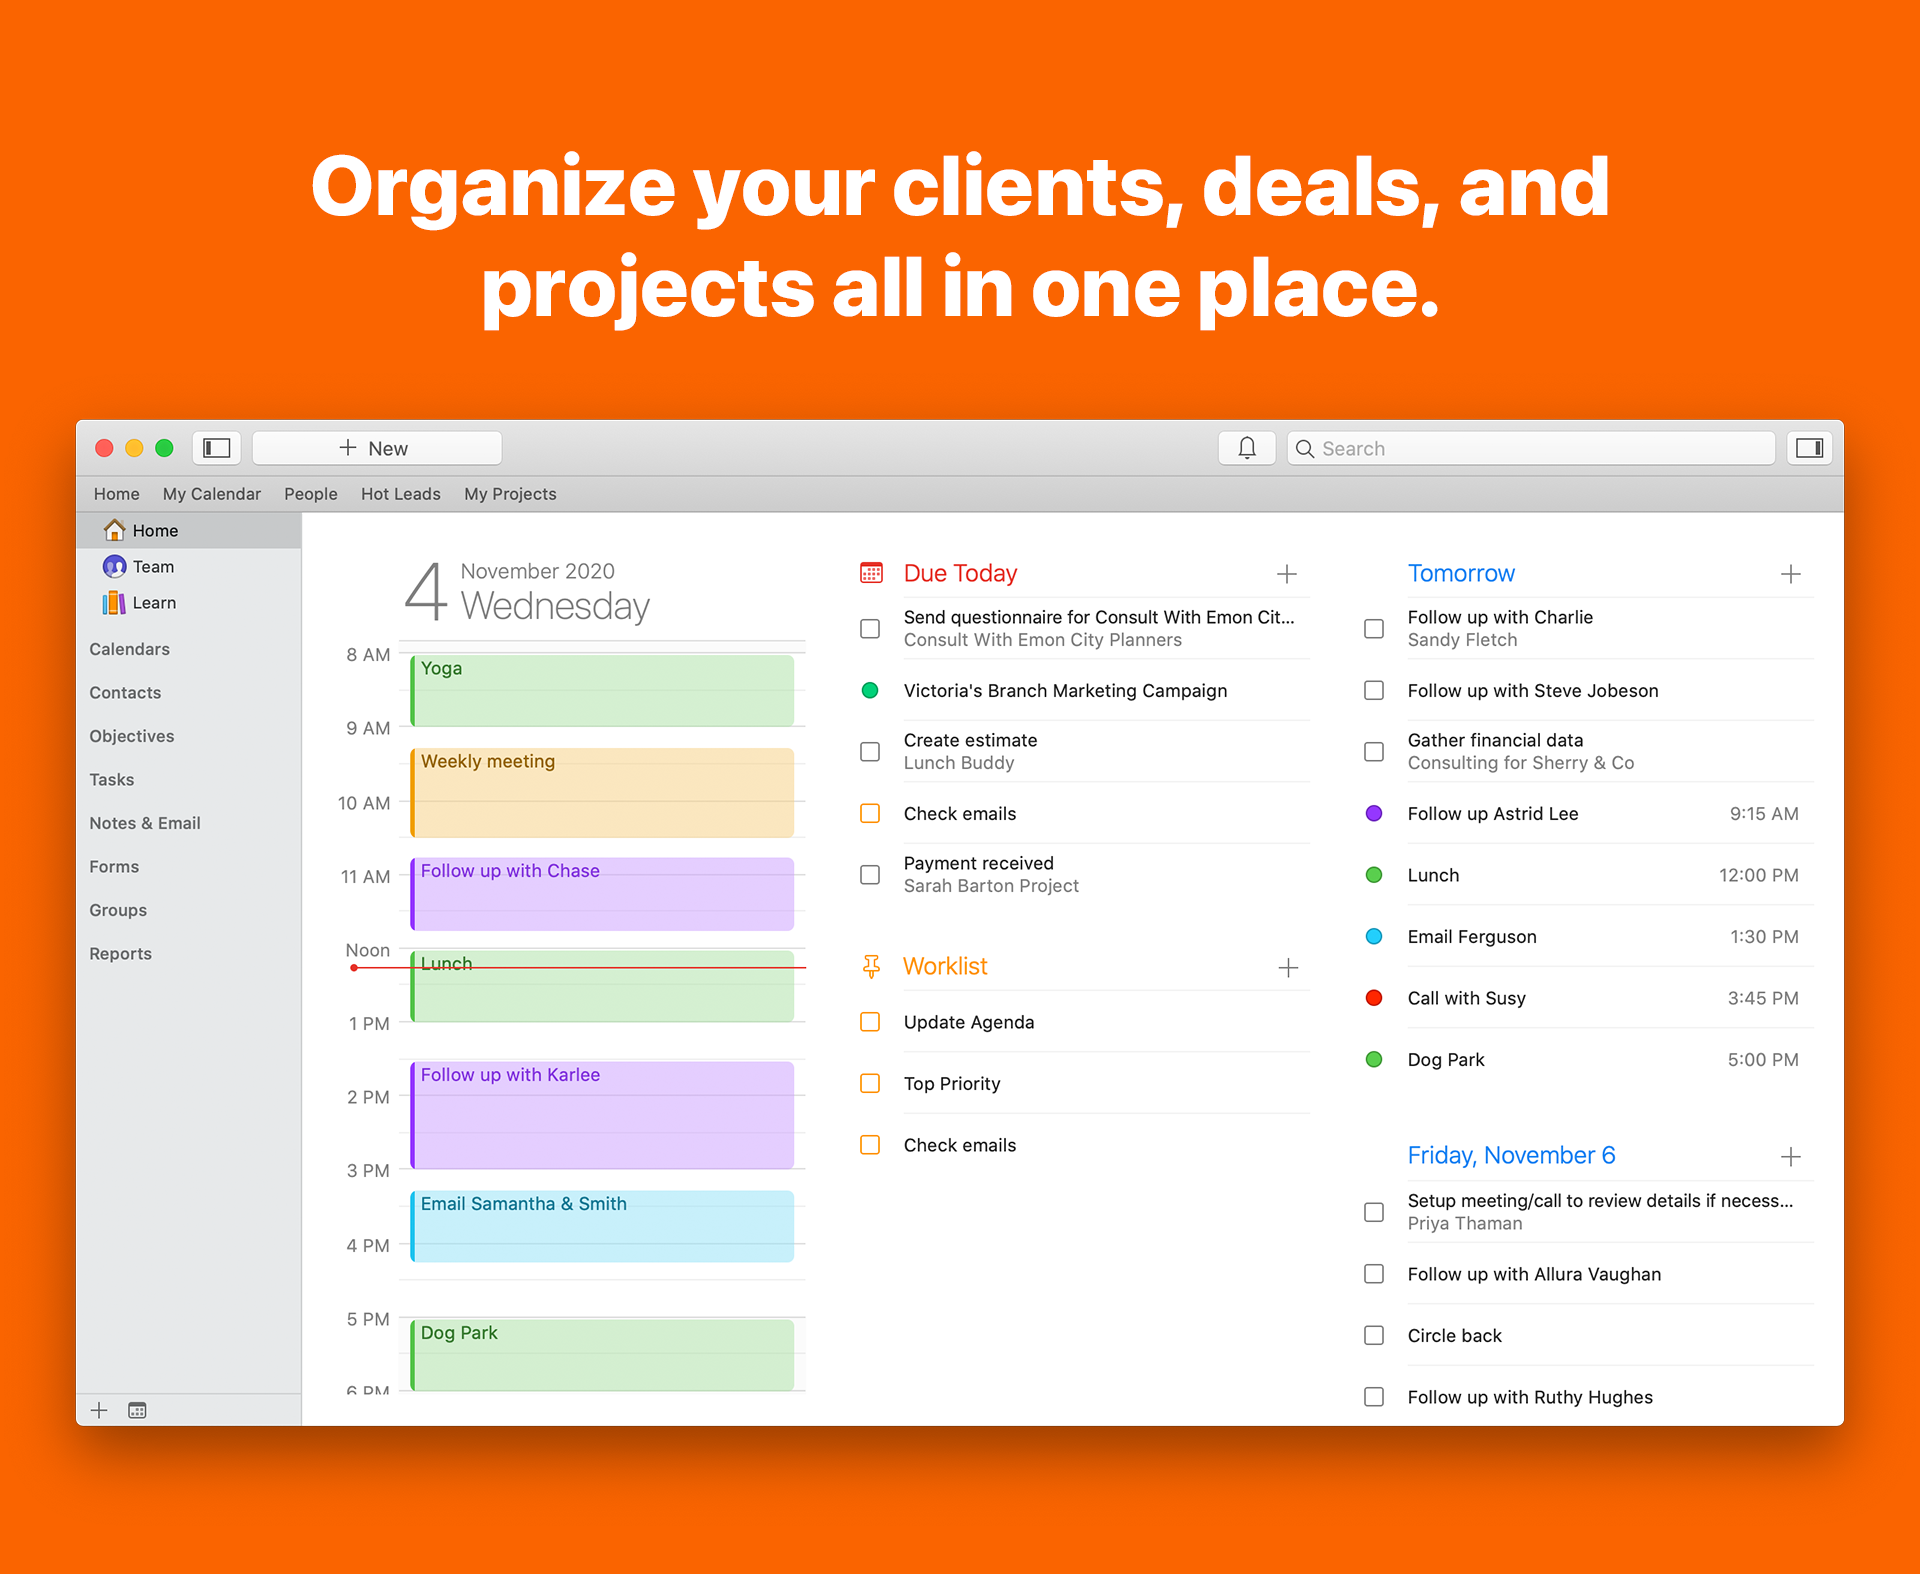 Daylite for Mac Software - Organize your clients, deals, and projects all in one place.